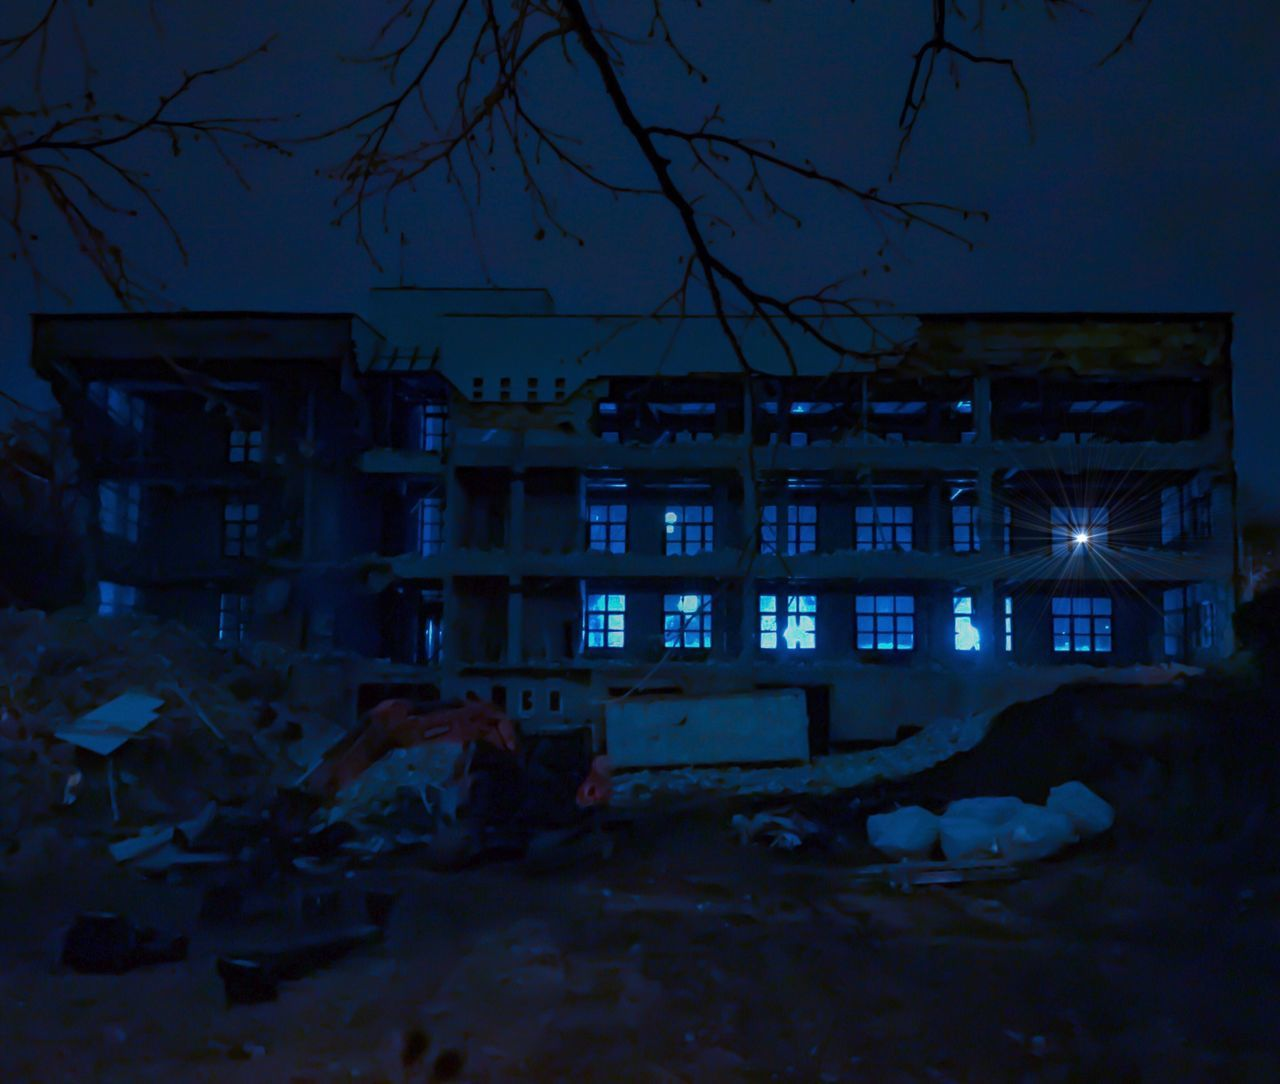 Built Structure Building Exterior Architecture Abandoned No People Night Winter Cold Temperature House Snow Tree Illuminated Outdoors Distroyed Building Story Buildings Creative Light And Shadow Building Structures Blue Night Lights Night Photography Nightshot Backlight And Shadows Backgrounds Windows